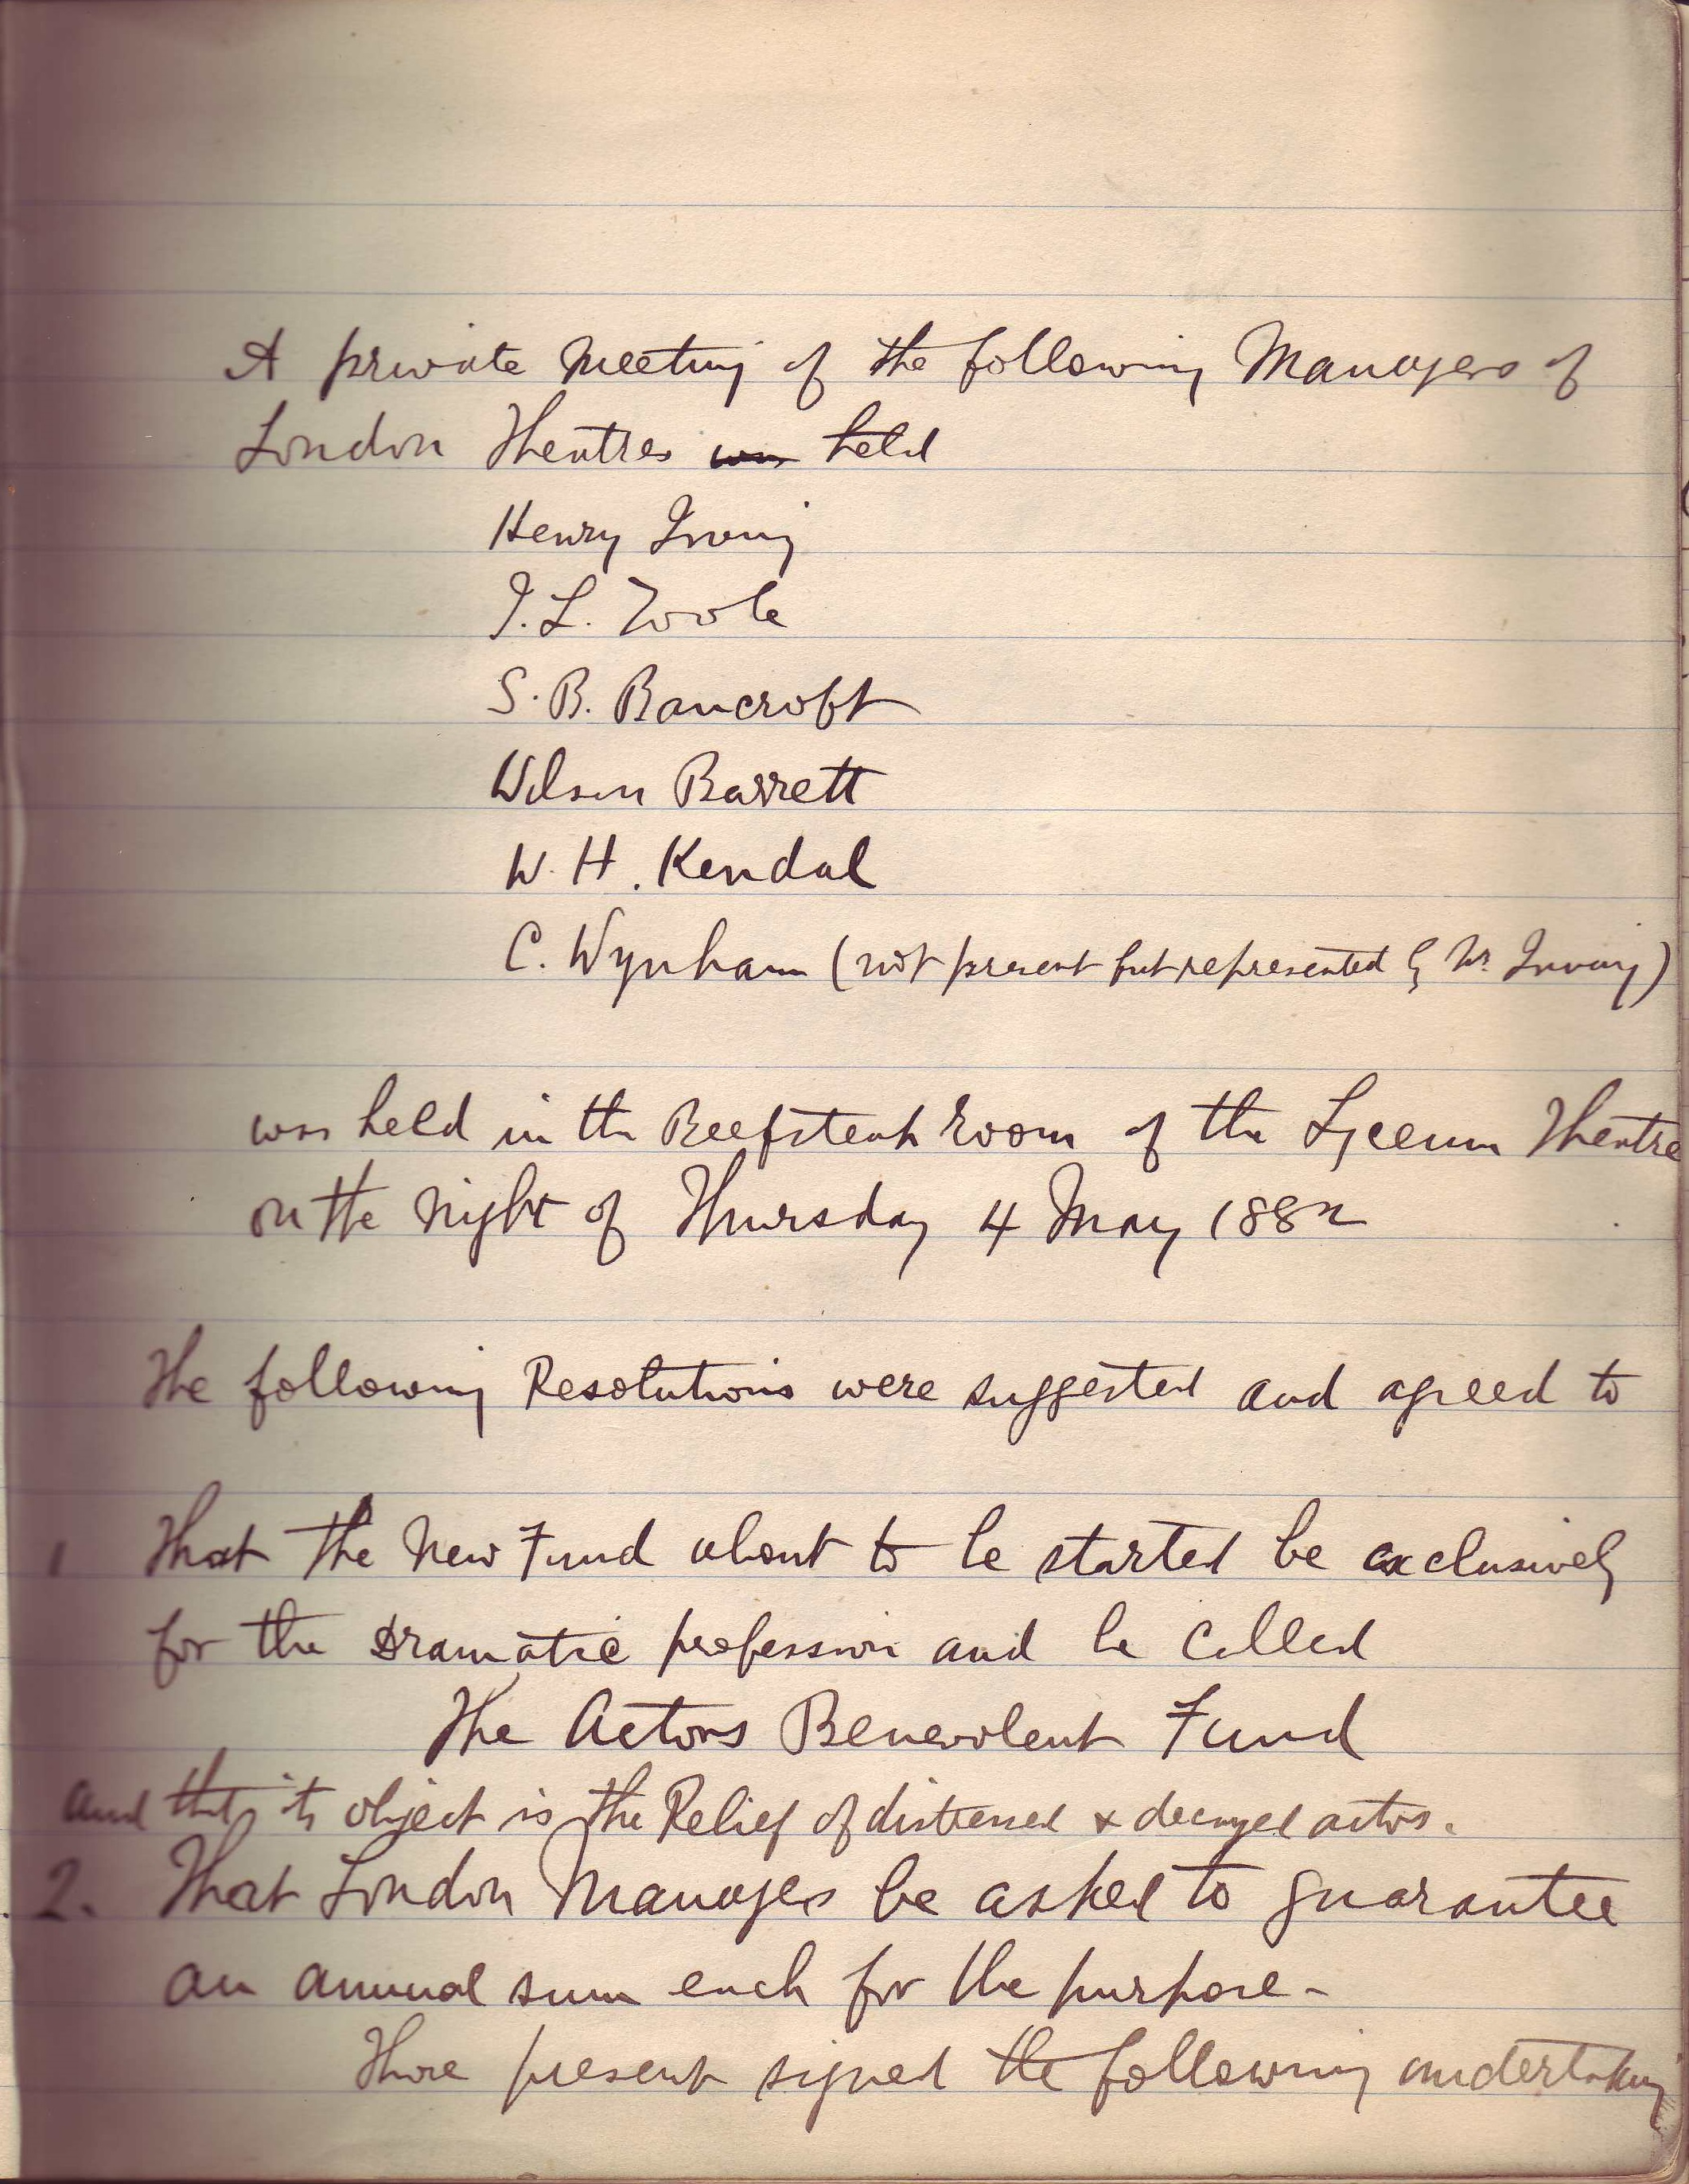 Minutes of the first meeting of the Actors' Benevolent Fund, 4th May 1882